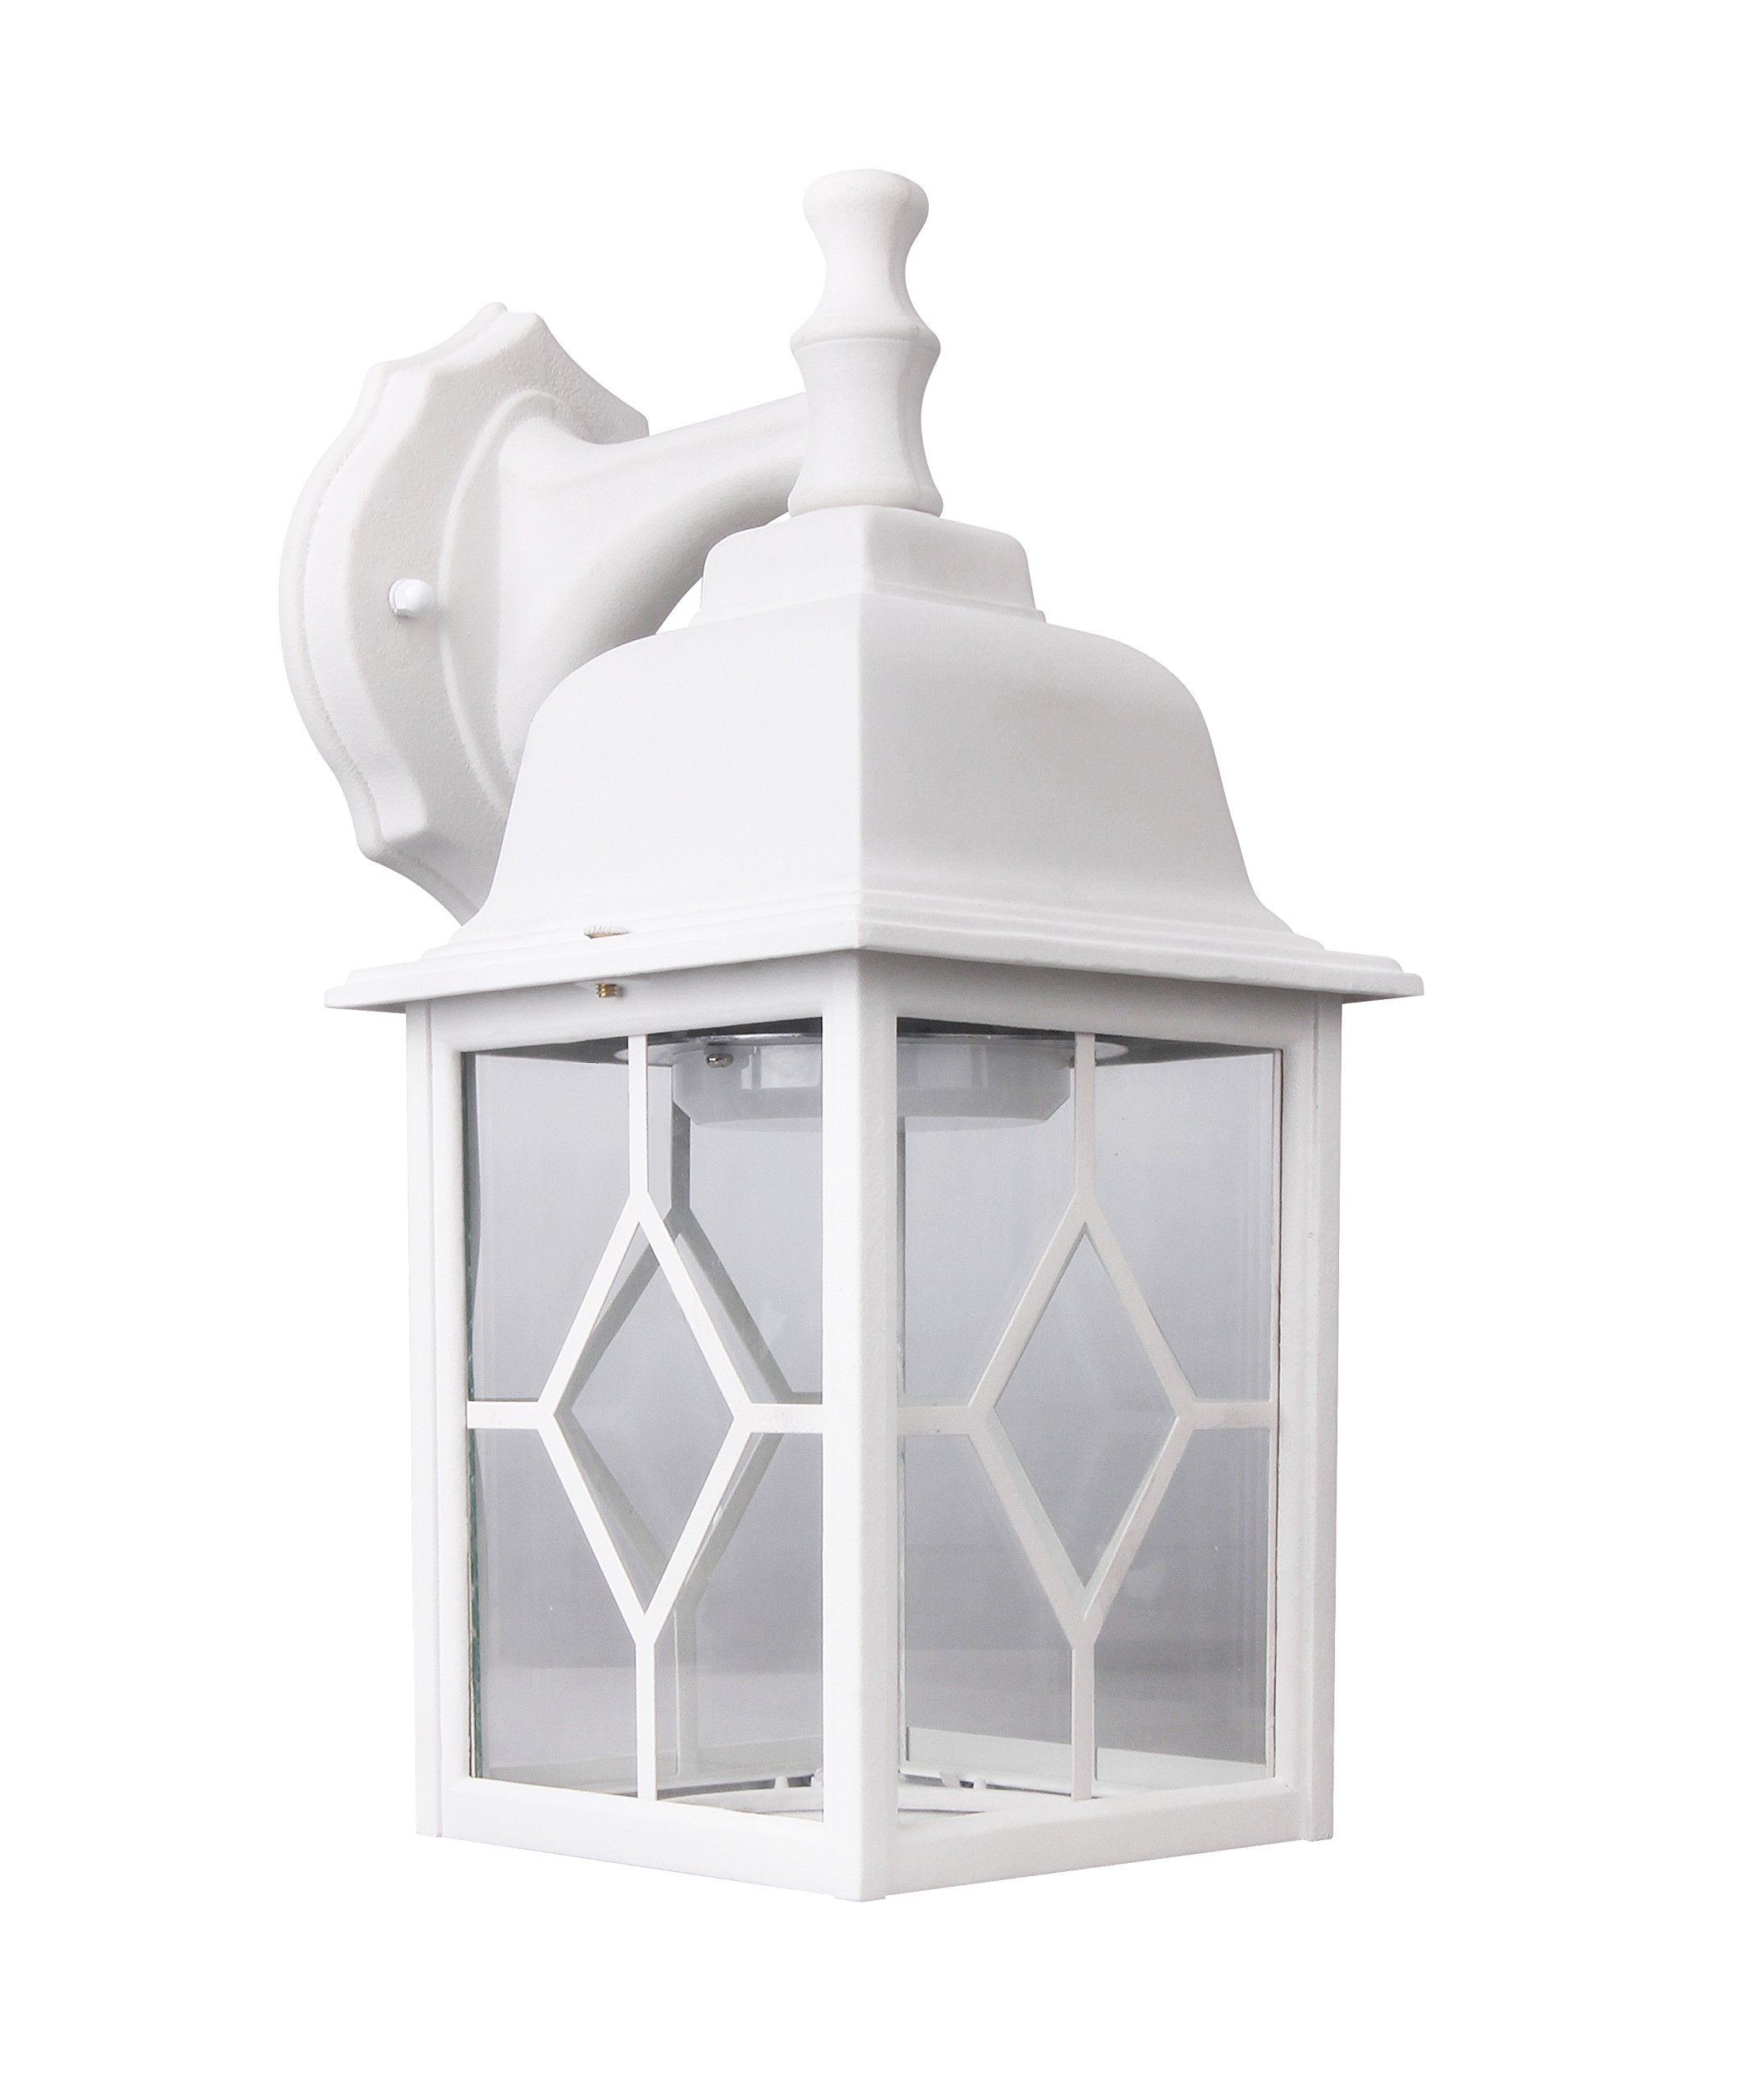 Lit-Path Outdoor LED Wall Lantern, Wall Sconce as Porch Light, 11W (100W Equivalent), 1000 Lumen, Aluminum Housing Plus Glass, Matte White Finish, Outdoor Rated, ETL and ES Qualified